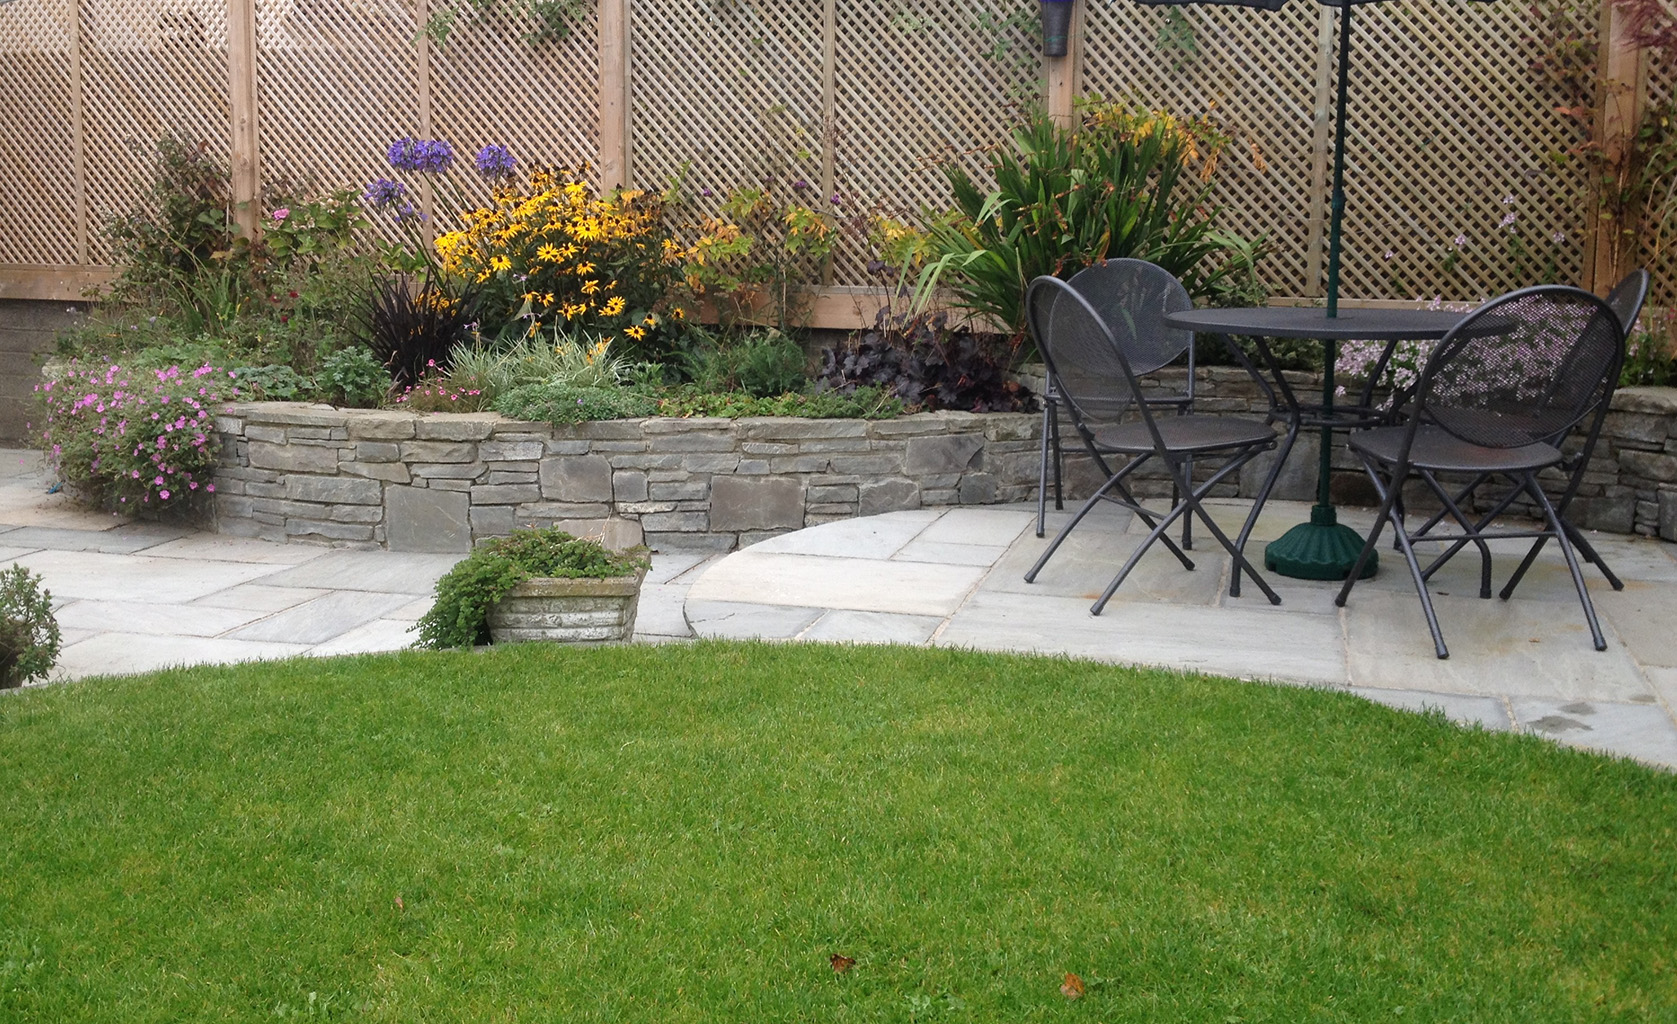 the location was leixlip co kildare this project was completed in summer 2014